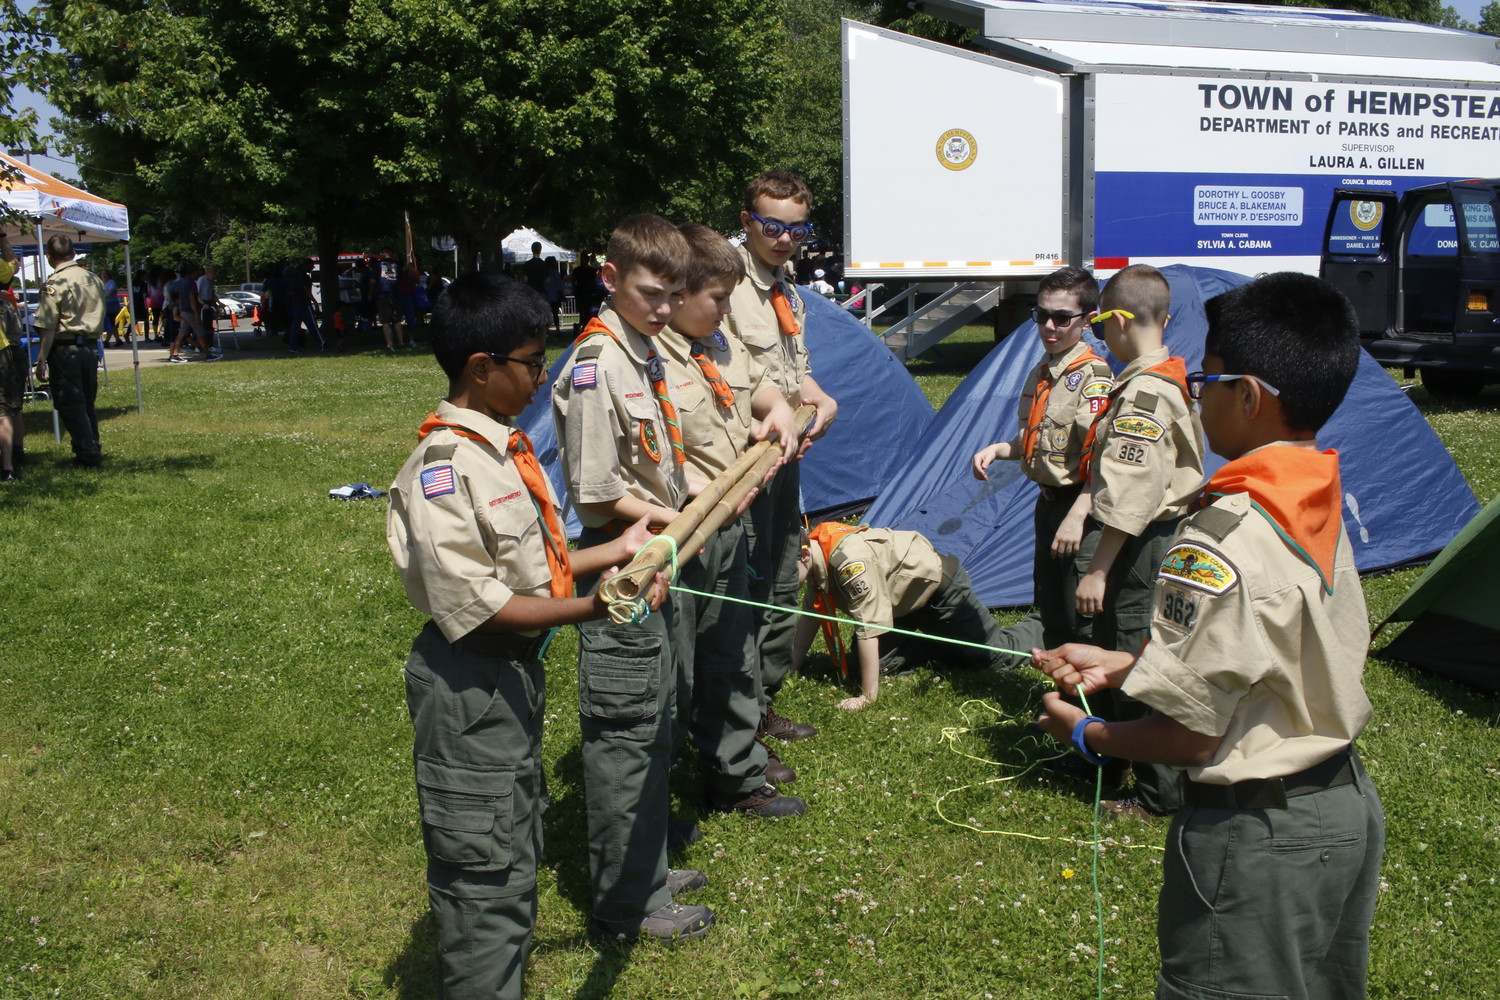 Boy Scout Troop 362 practiced tying knots, lashing, making tripods and creating a 12 foot flagpole out of bamboo. They also demonstrated the knot tying to curious guests.